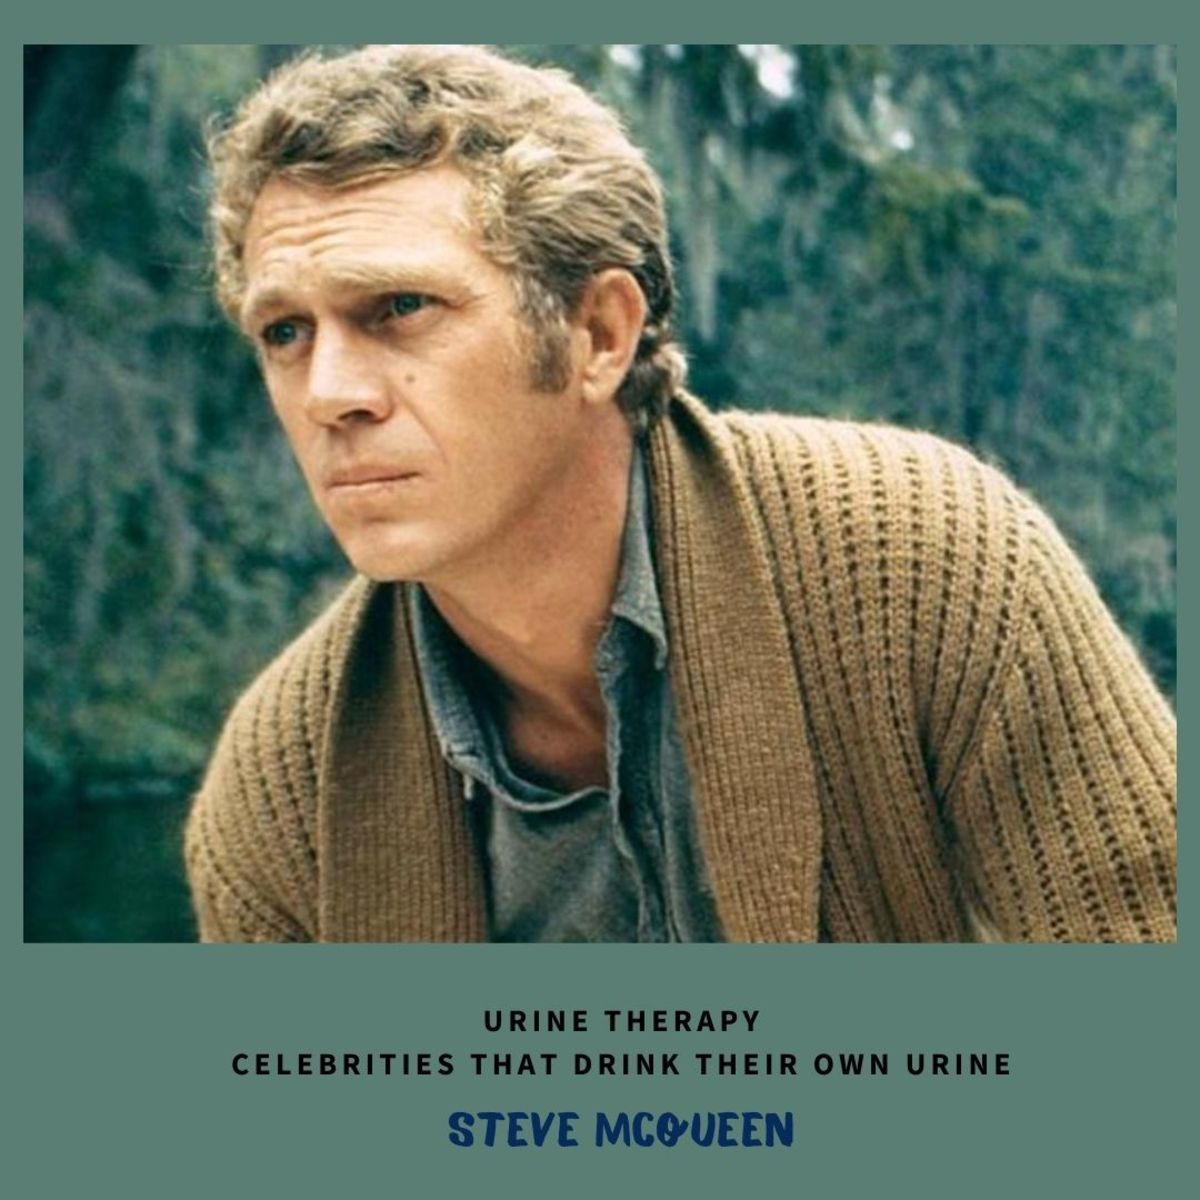 Steve McQueen, one of the famous man who drinks his own urine